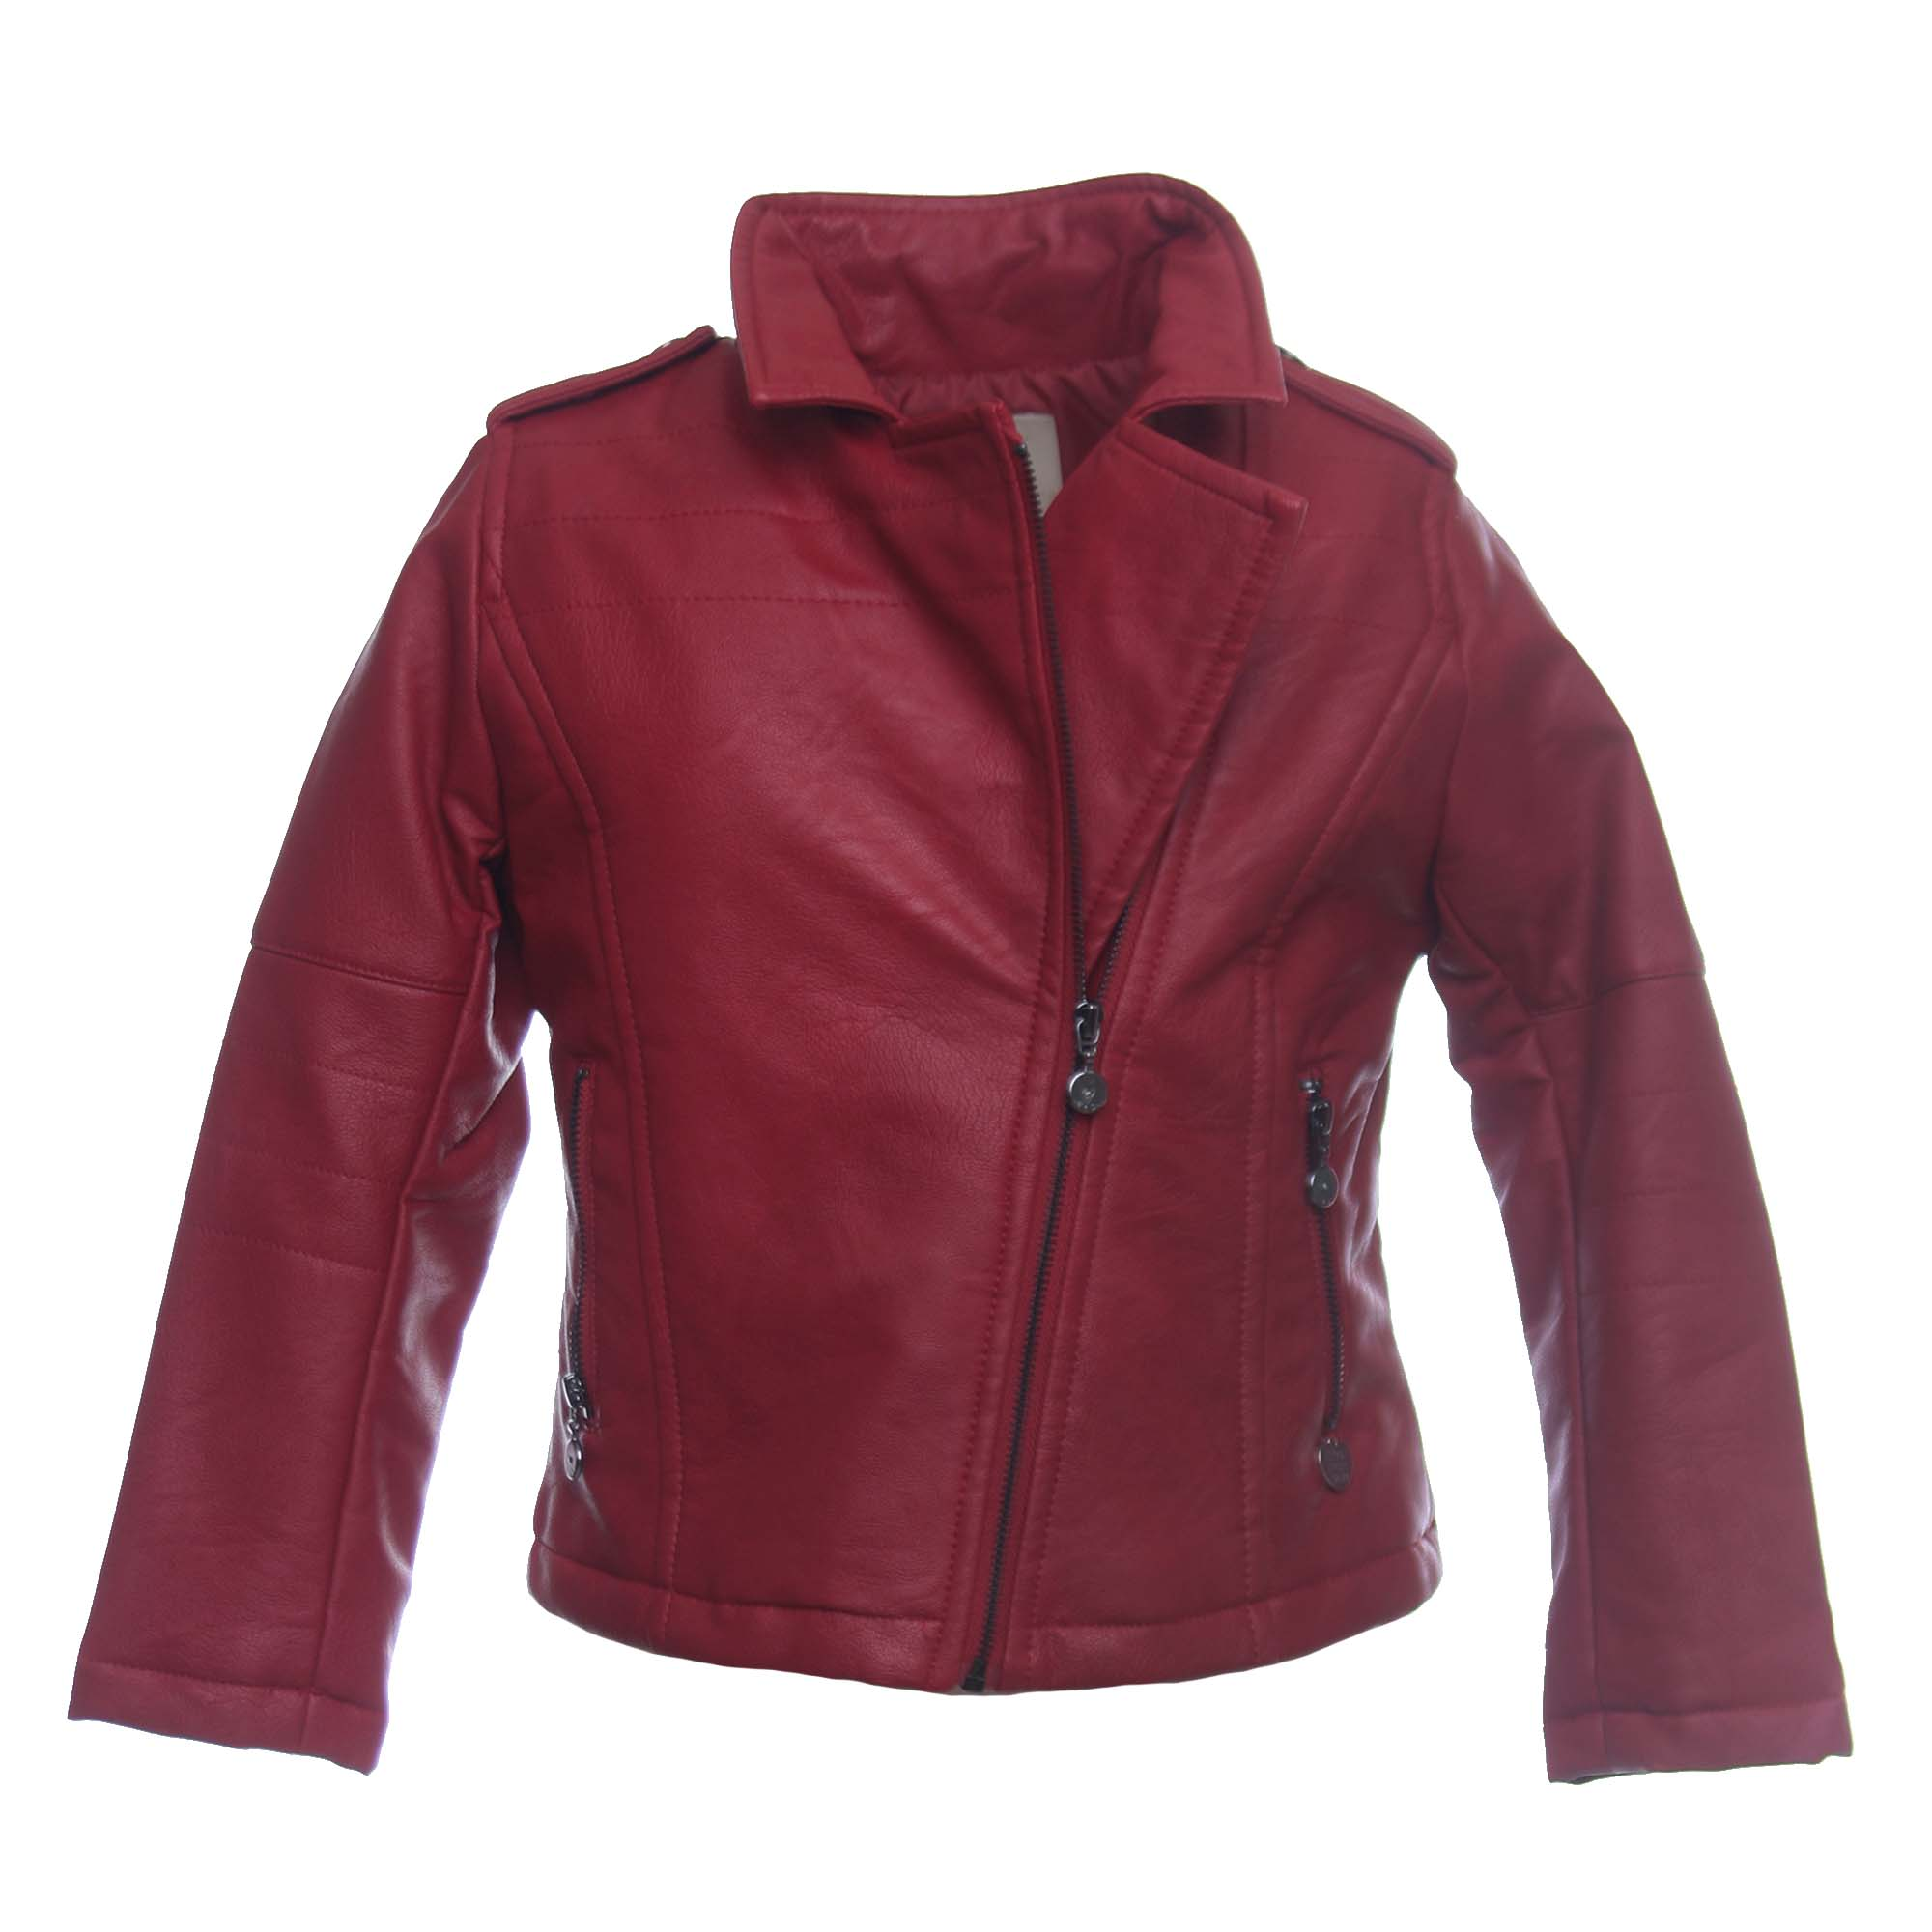 reputable site 4d43c 82acb Giacca Biker Bambina In Ecopelle Bordeaux